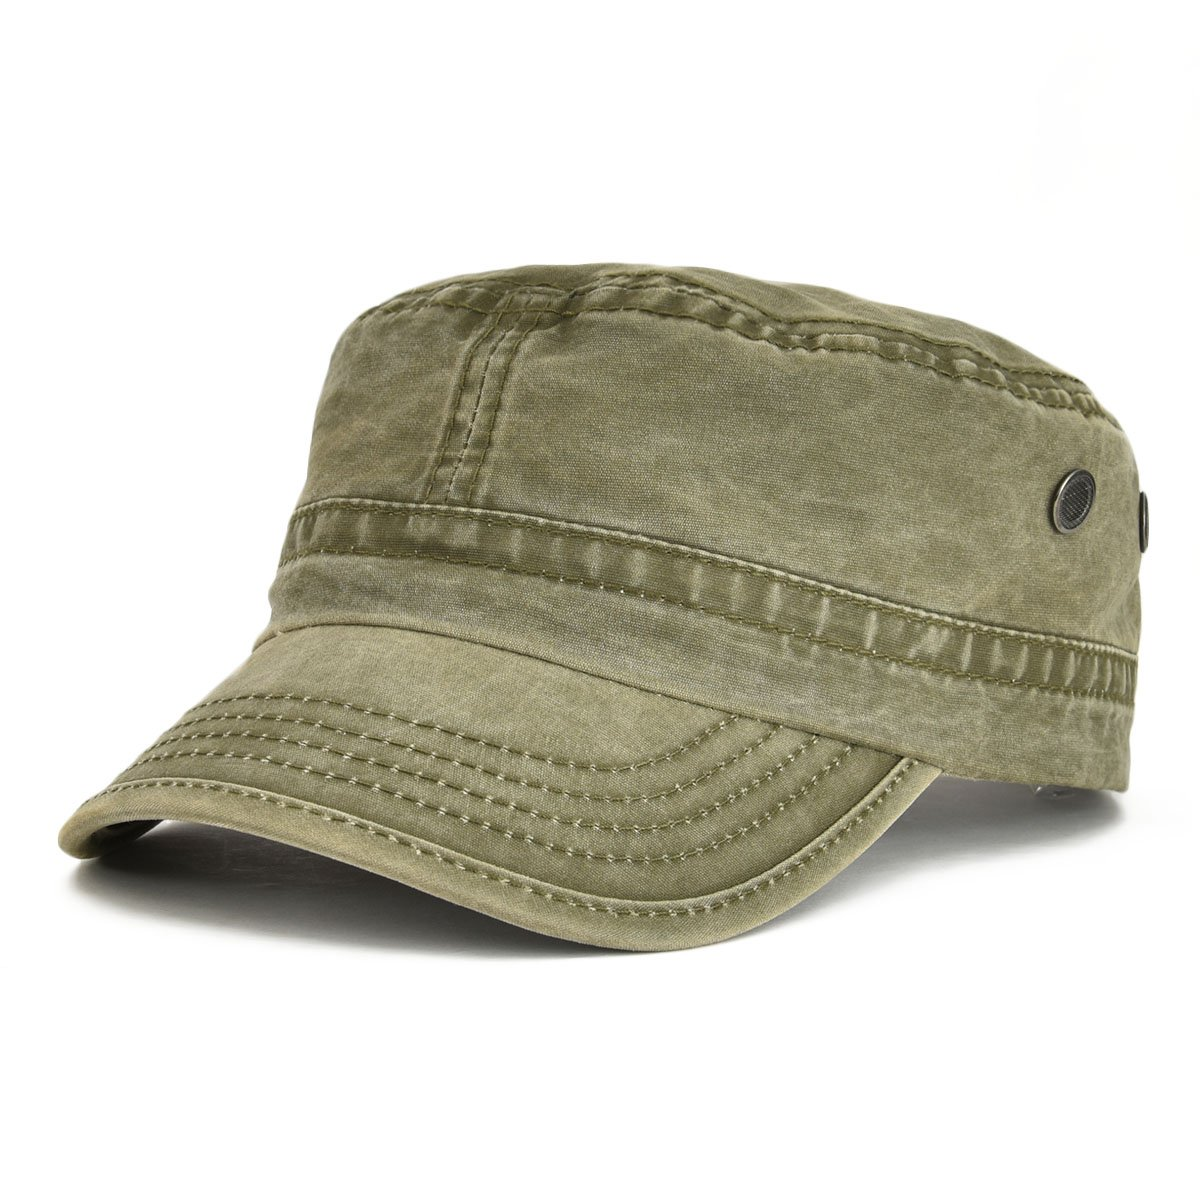 e289119a VOBOOM Washed Cotton Military Caps Cadet Army Caps Unique Design (Army  Green) at Amazon Men's Clothing store: